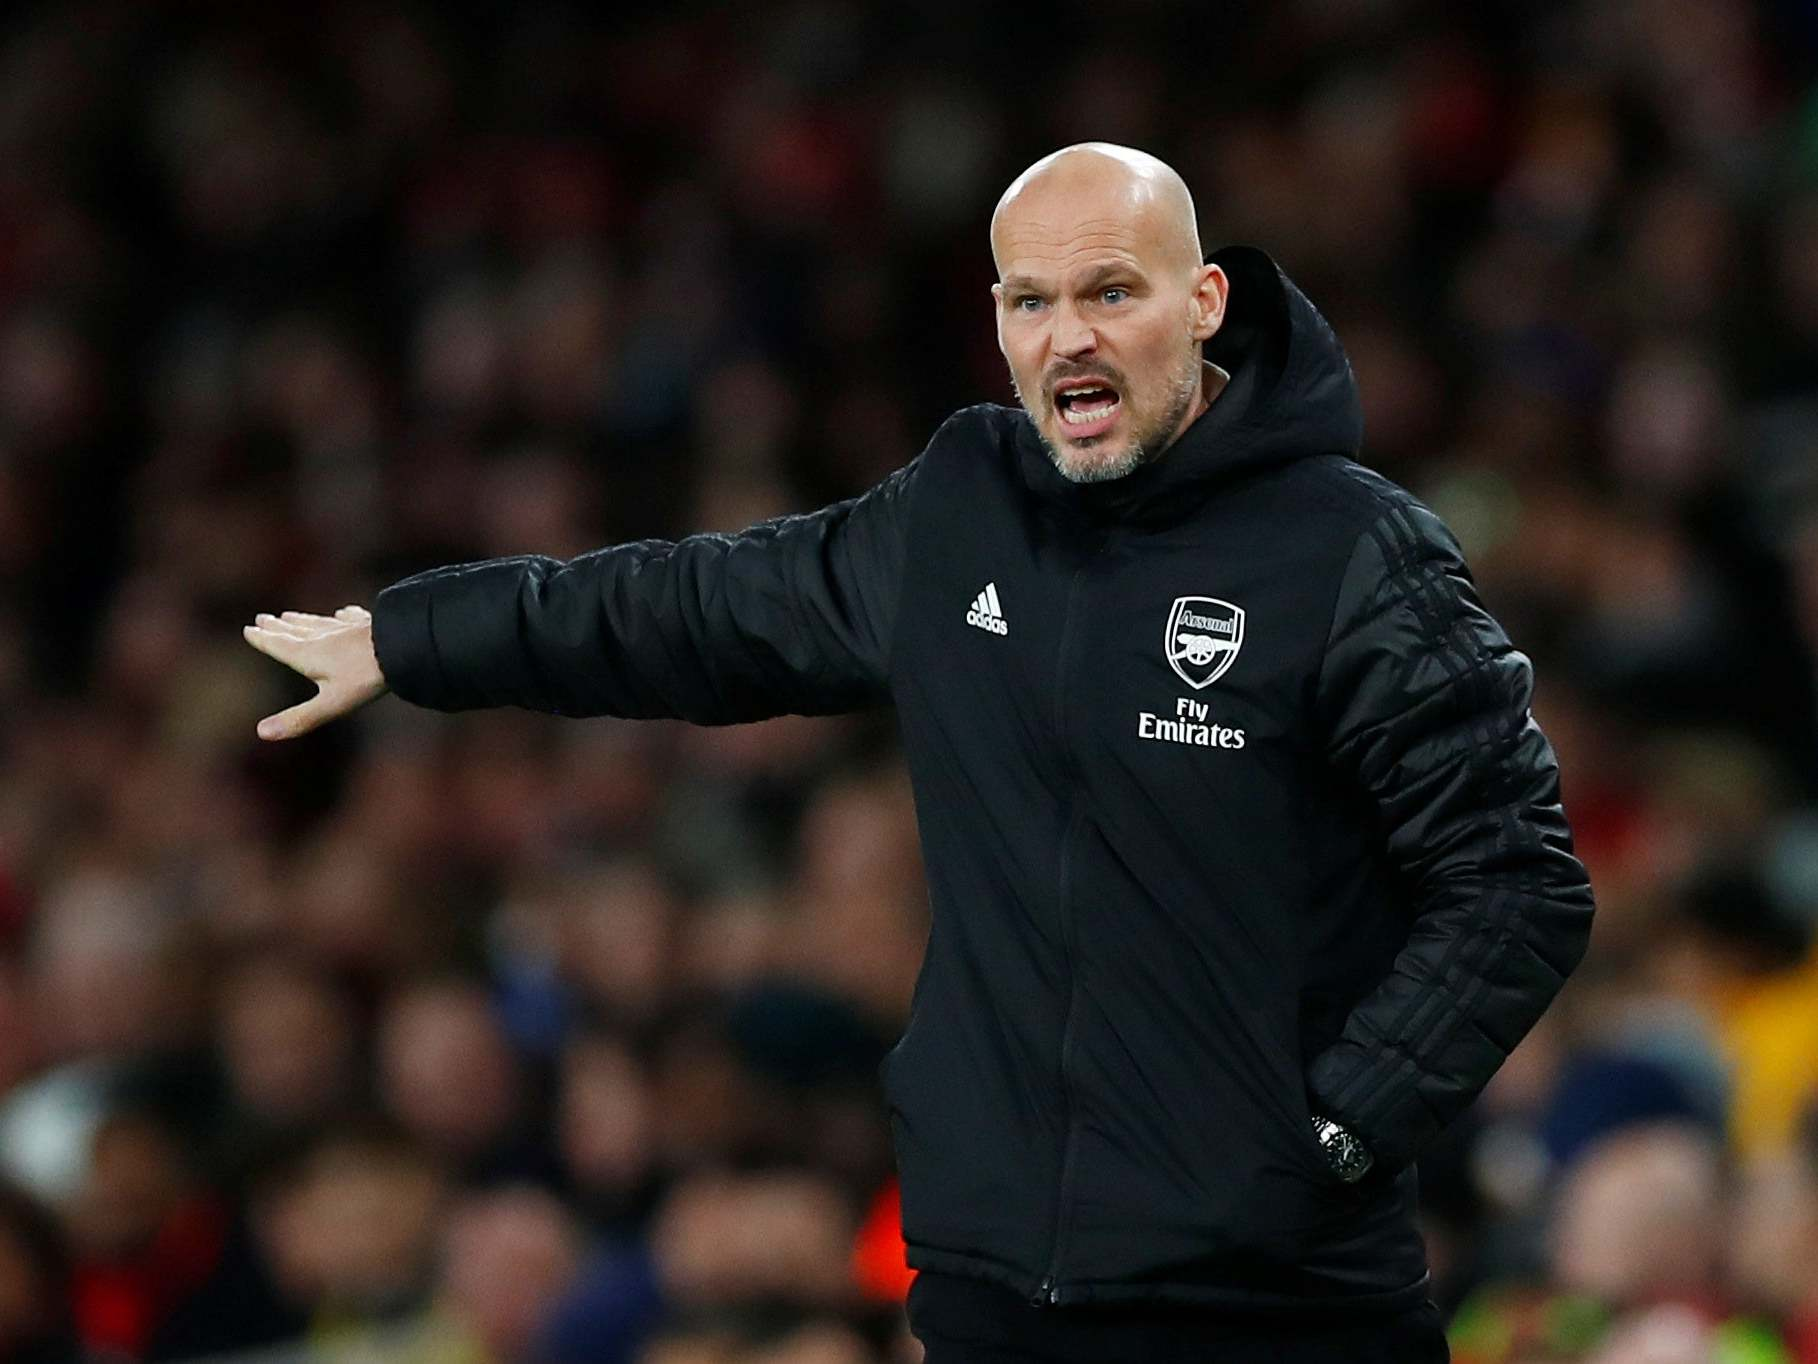 Arsenal vs Brighton: Freddie Ljungberg admits players are 'low on confidence' after drab defeat